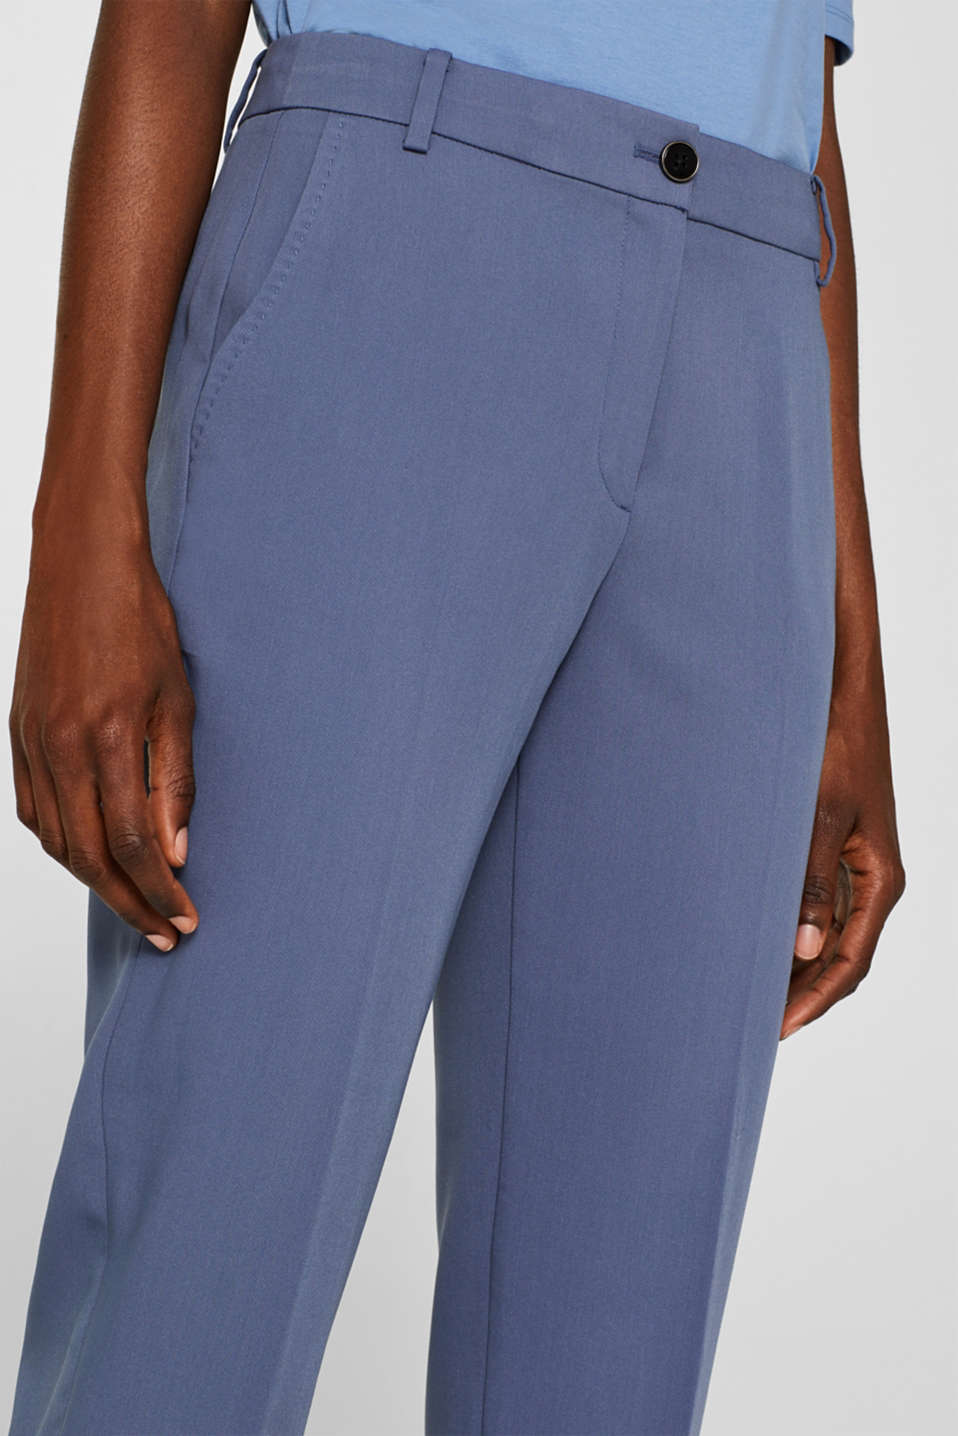 STITCHING mix + match stretch trousers with decorative stitching, GREY BLUE 2, detail image number 2